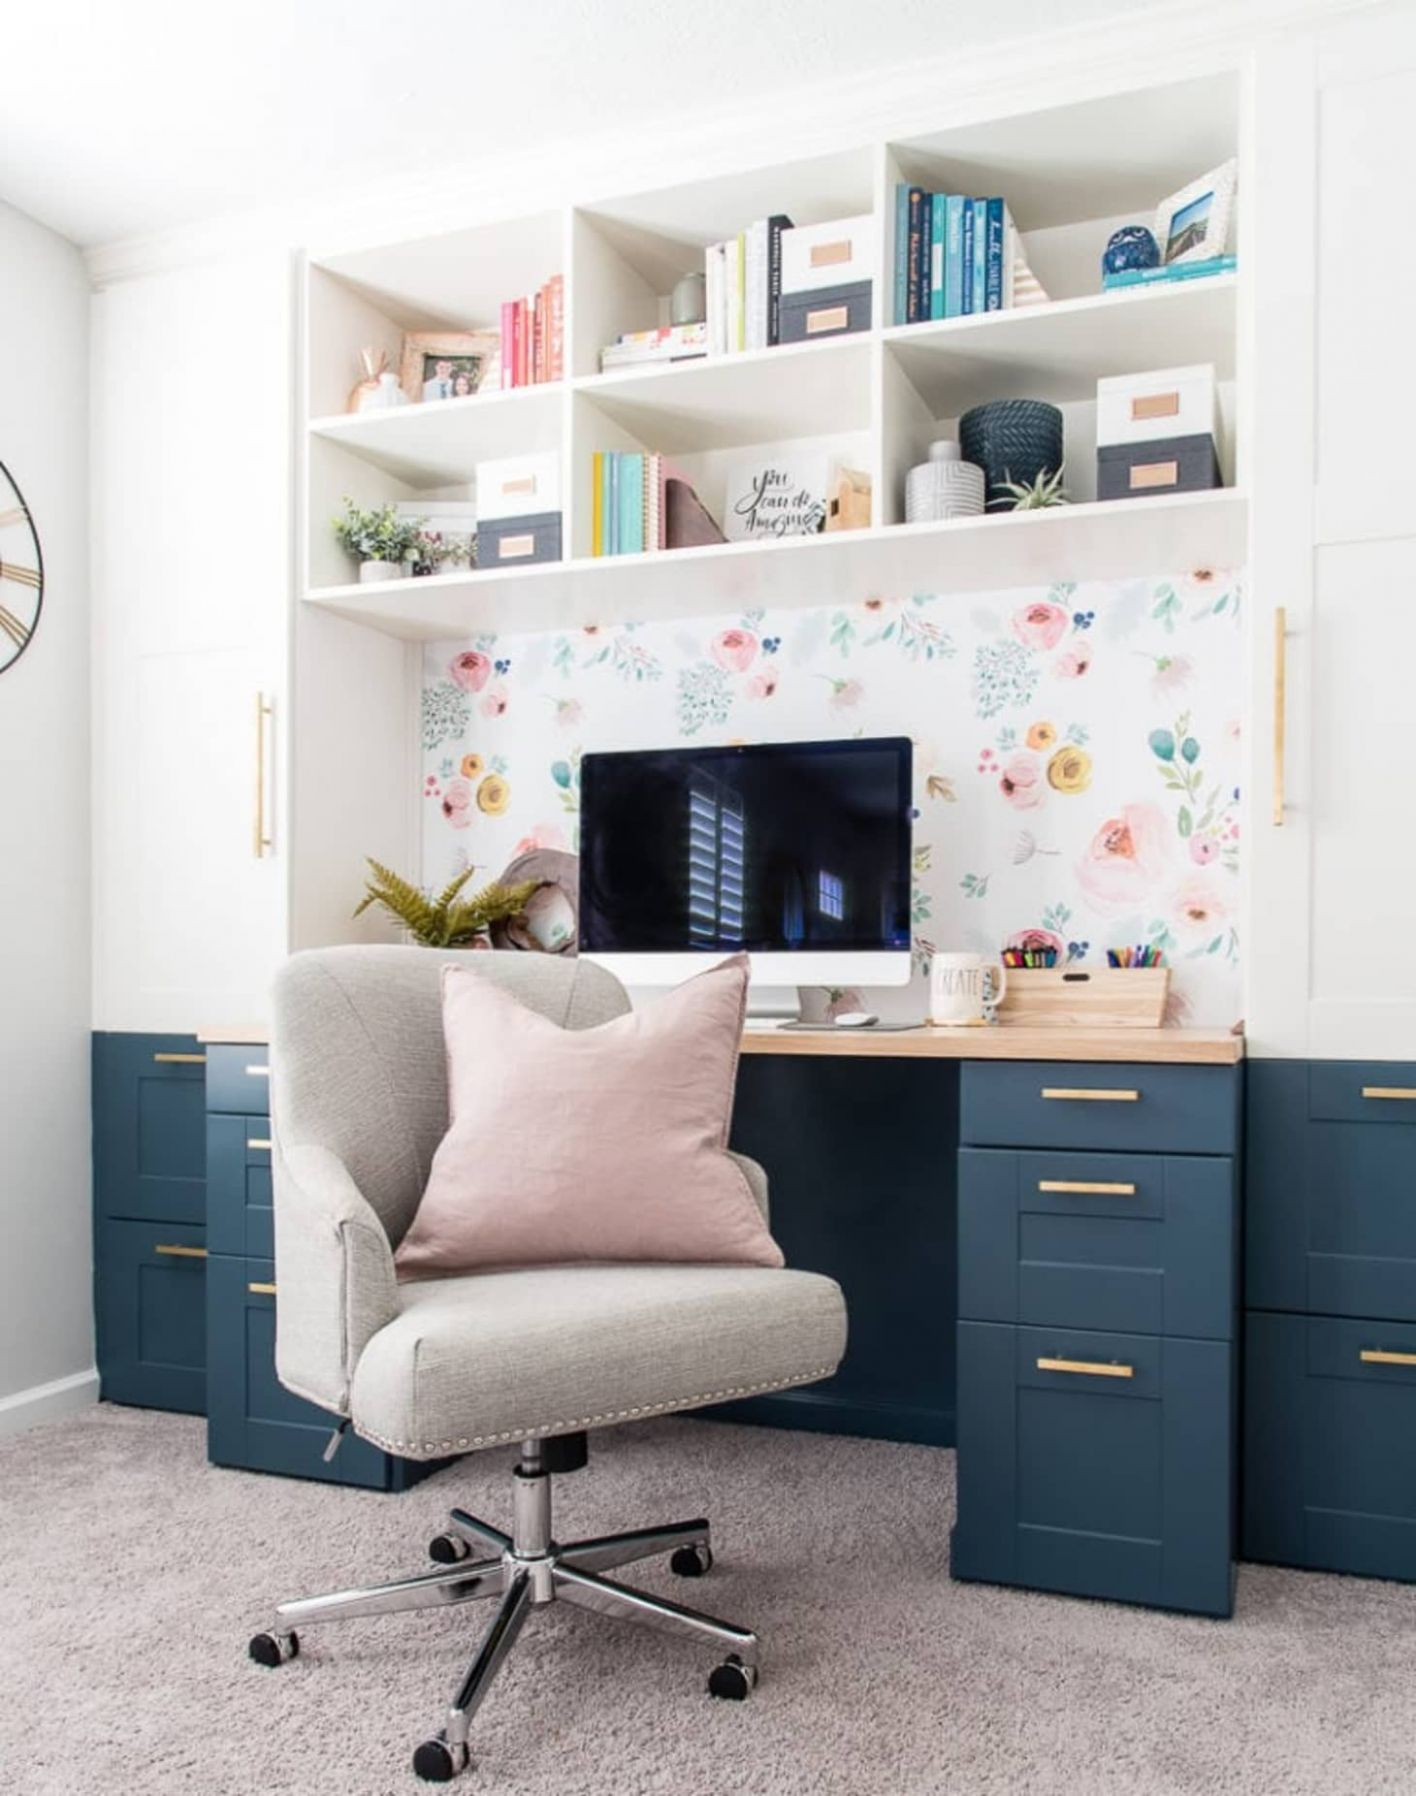 The Best Office Decor Ideas | Apartment Therapy - decorating your home office ideas